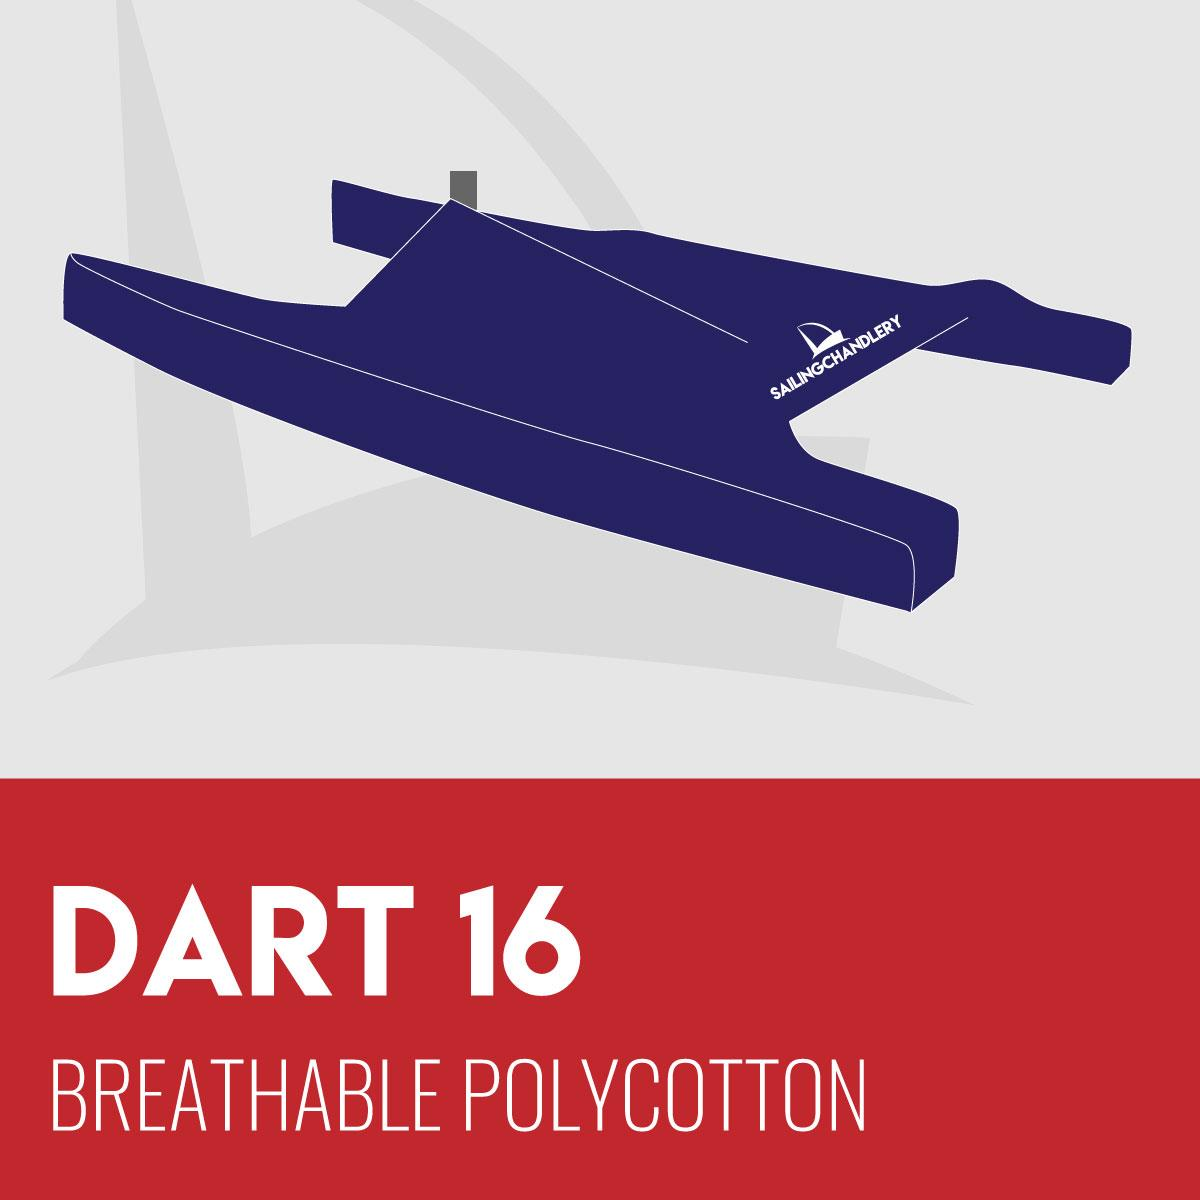 Dart 16 Boat Cover - Breathable PVC Polycotton